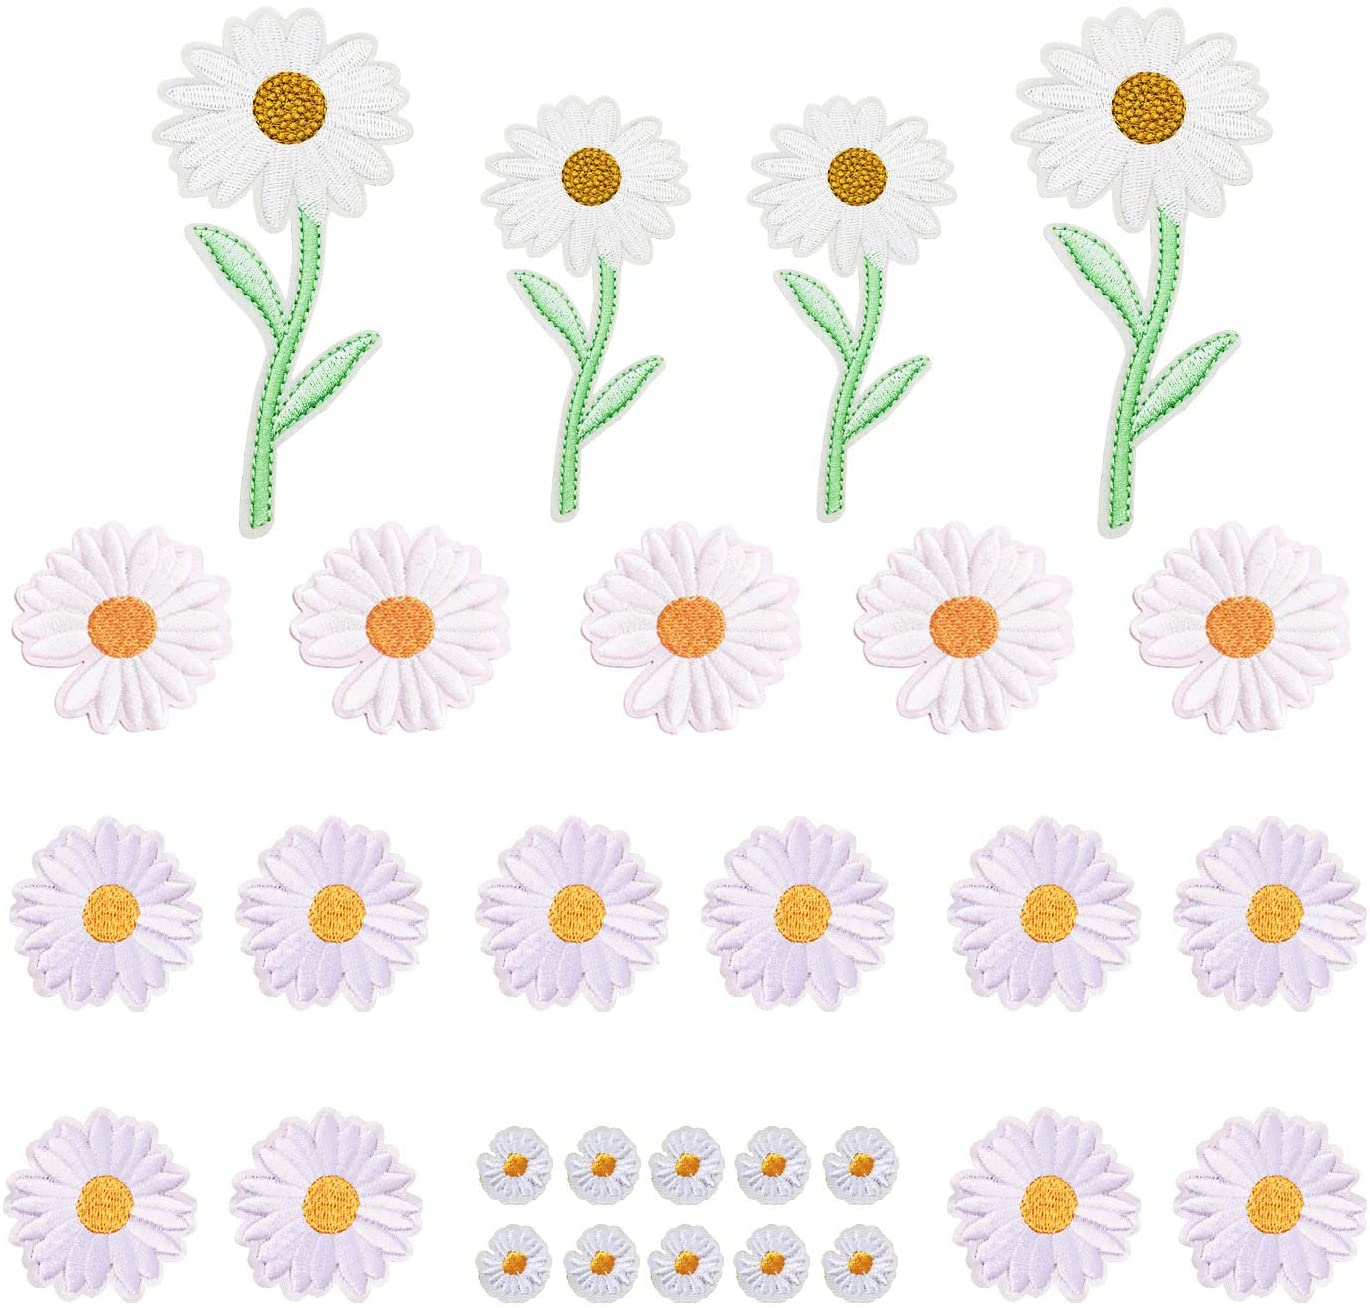 Woohome 29 PCS Iron On Patches Daisy Flower Sewing Repair Patches Jeans Patch Iron on Inside for Clothing Jeans and DIY Repair